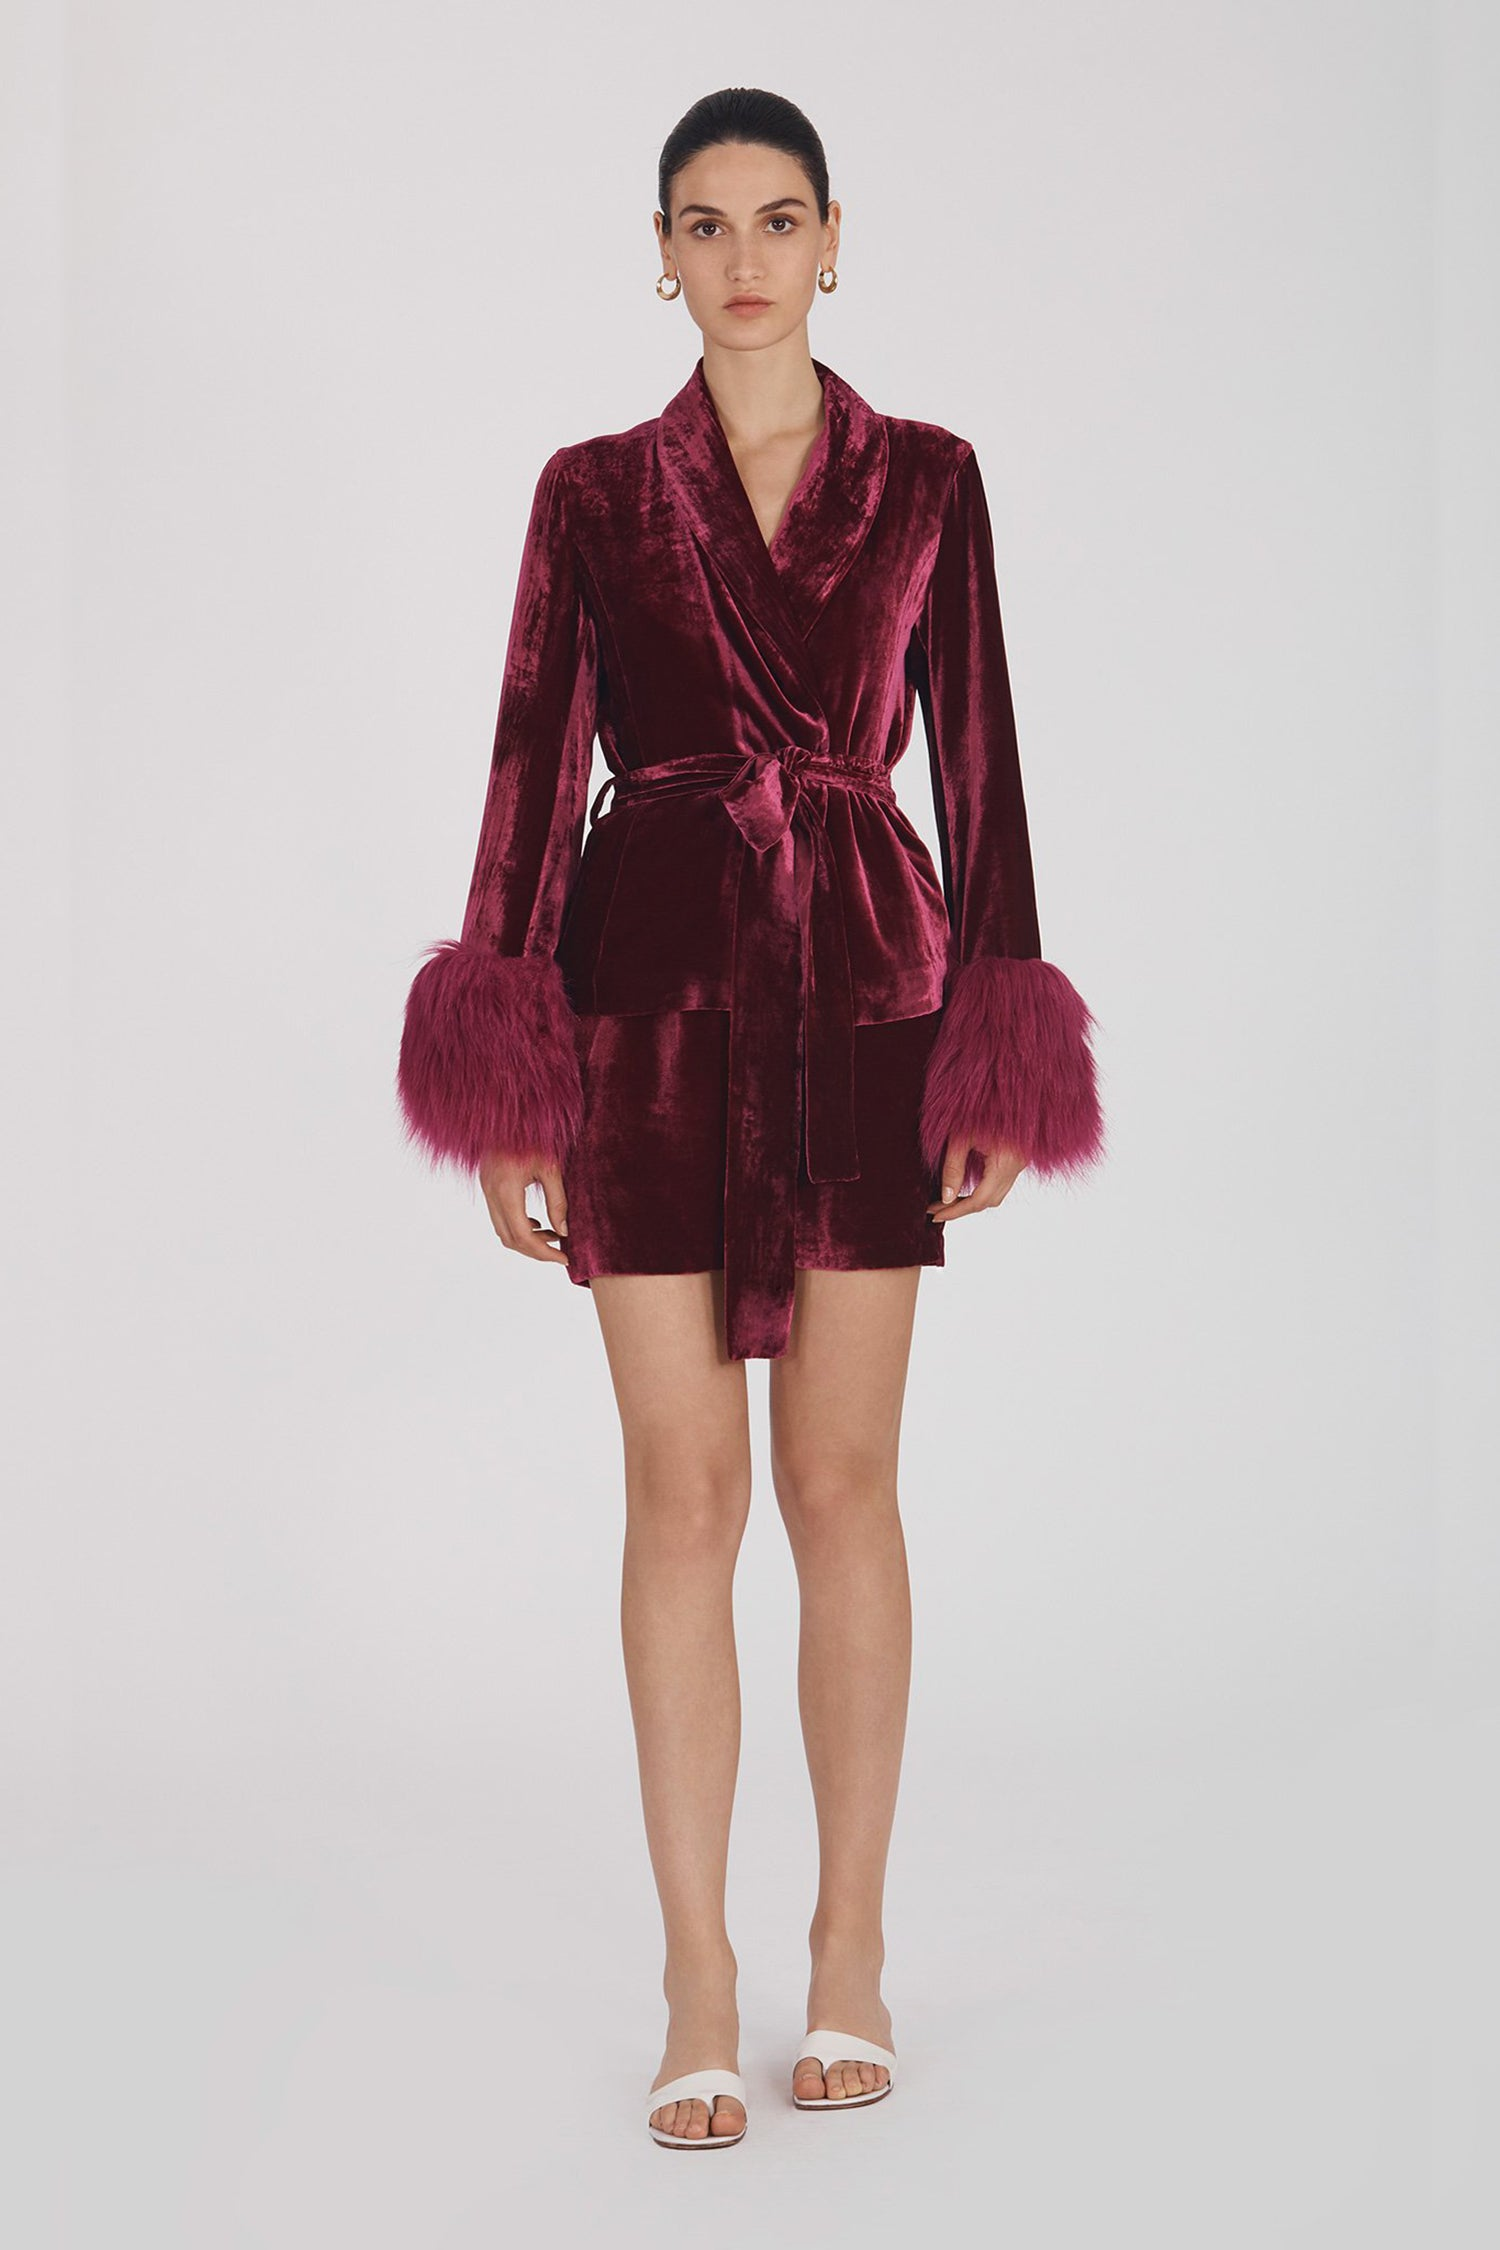 Marei1998's Clarkia Silk Velvet Jacket In Bold Raspberry Color. Featuring Lapel Collar and Bell Sleeves, Trimmed With Faux Fur. Matching Tip-up Belt To Define The Waist. Front View. Resort 2020 Collection - Furless Friendship.